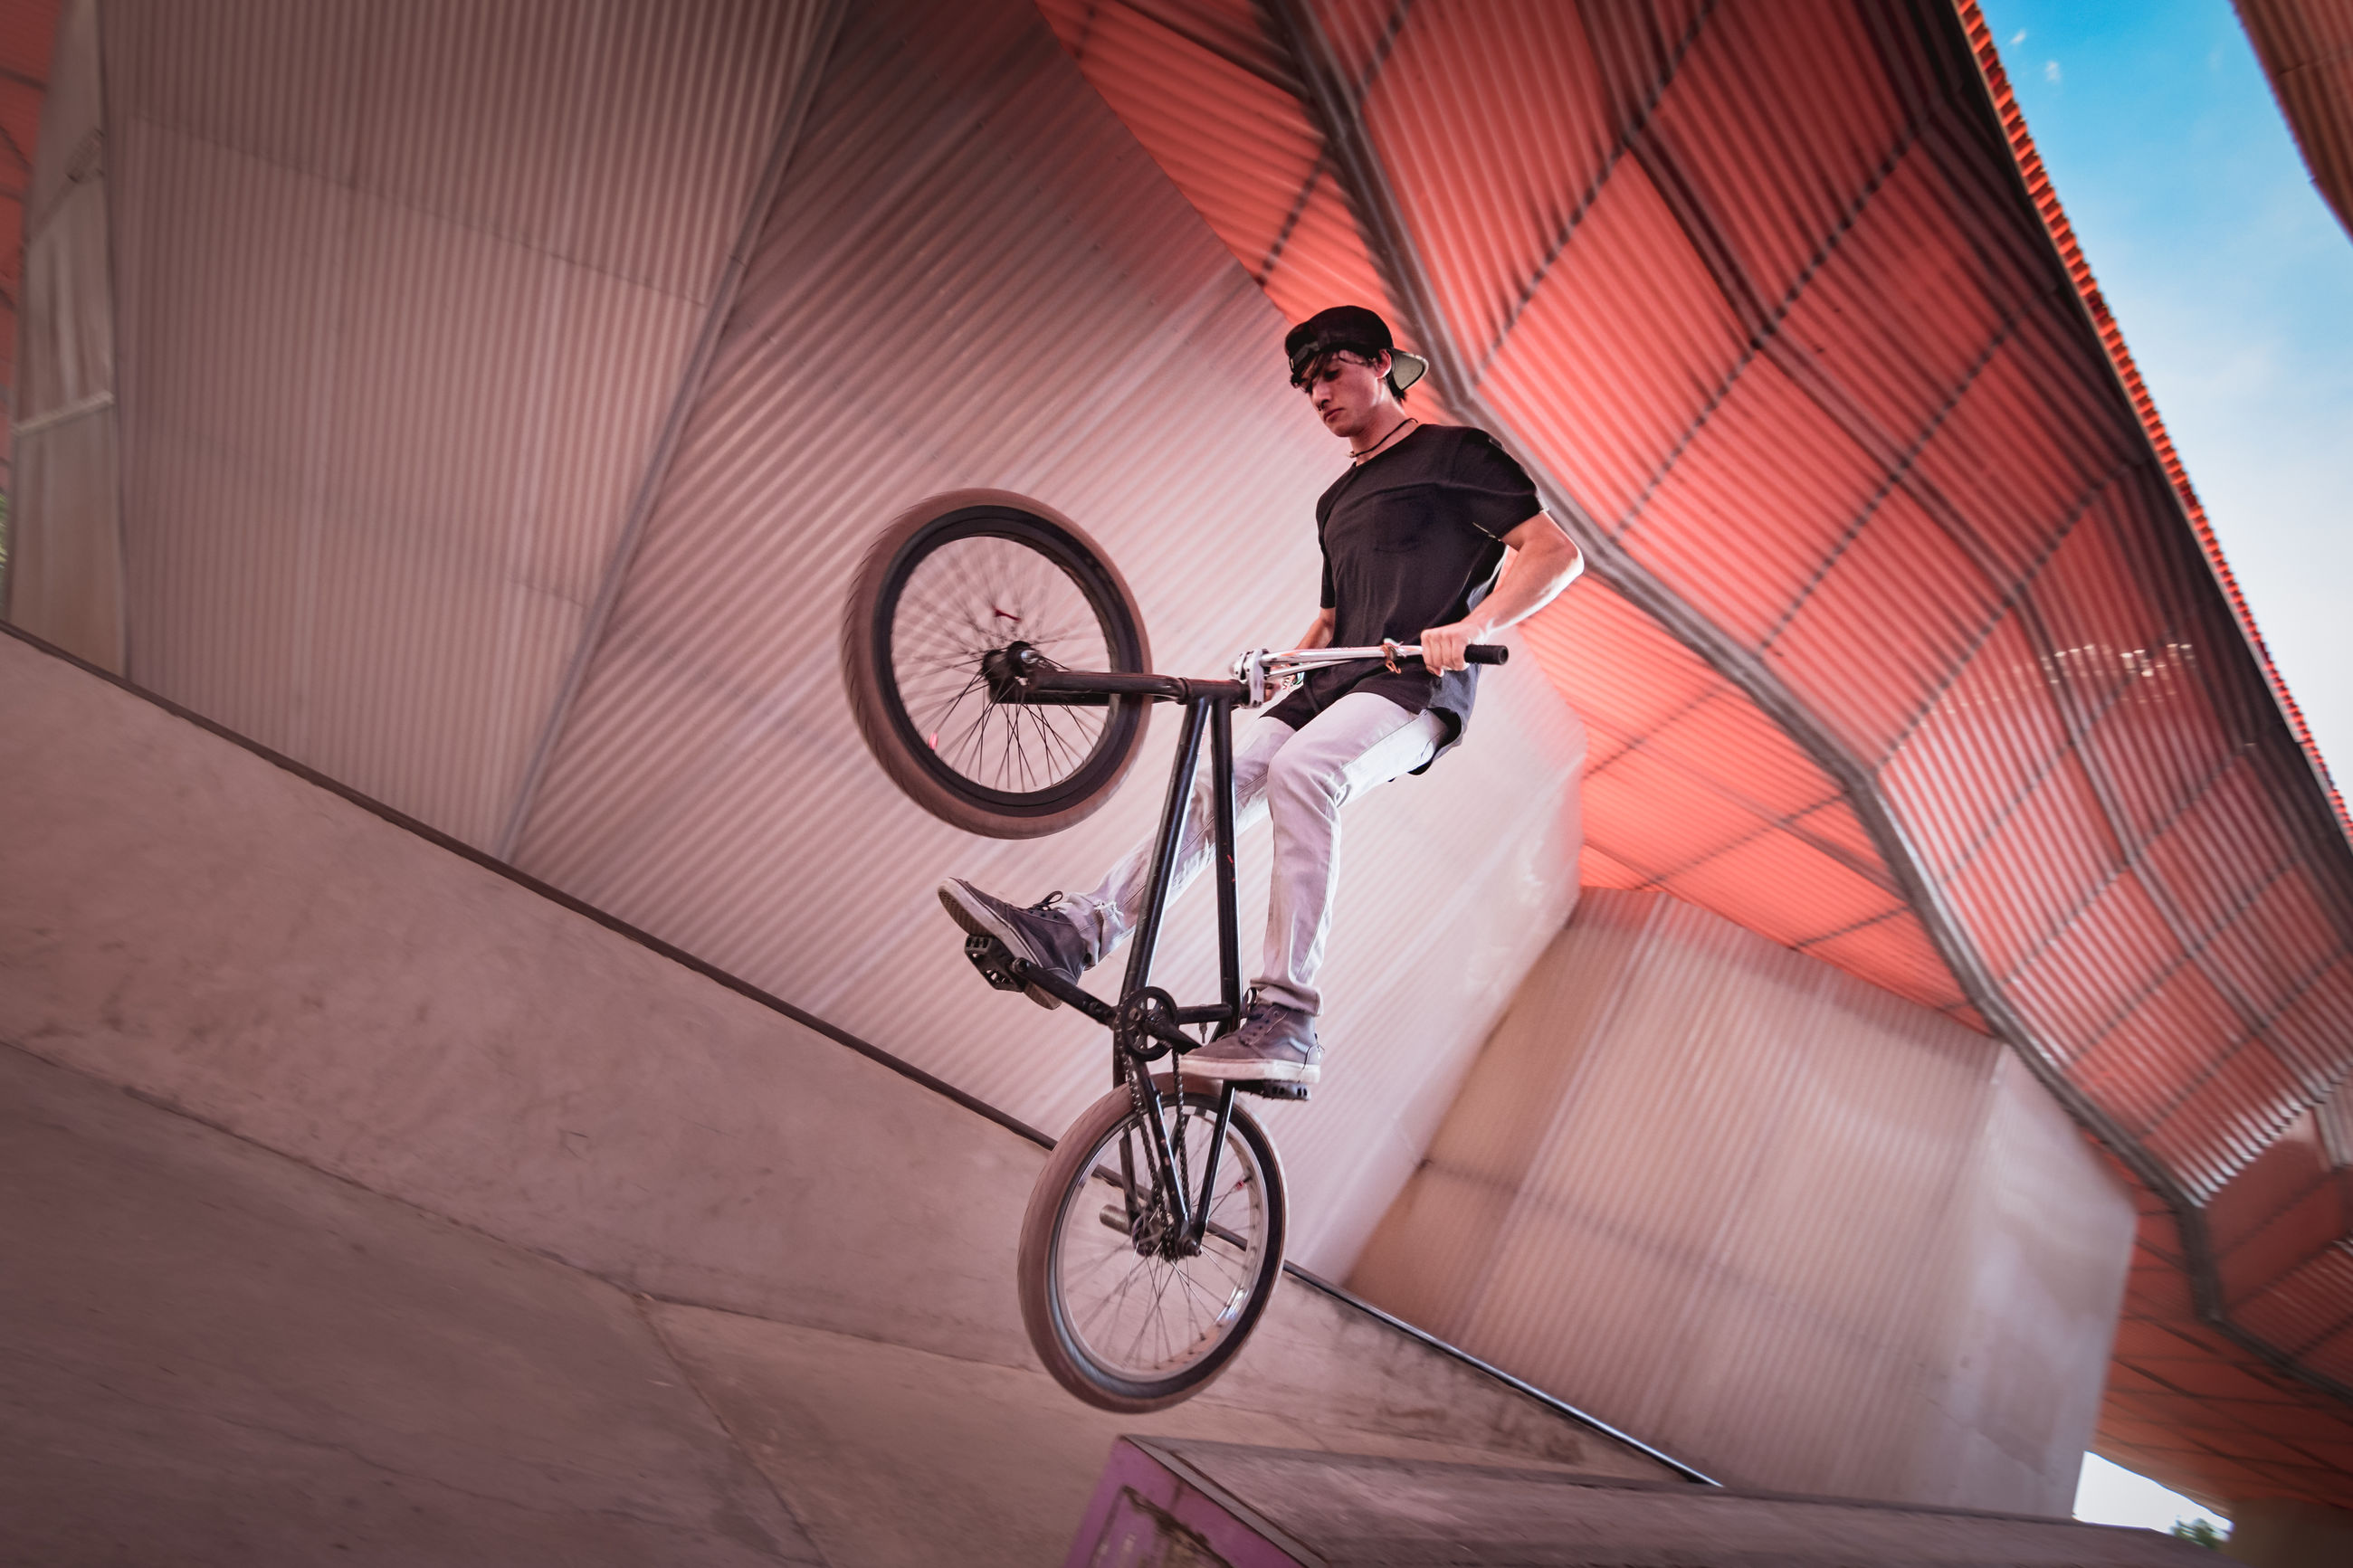 Young man riding bicycle on ramp at park